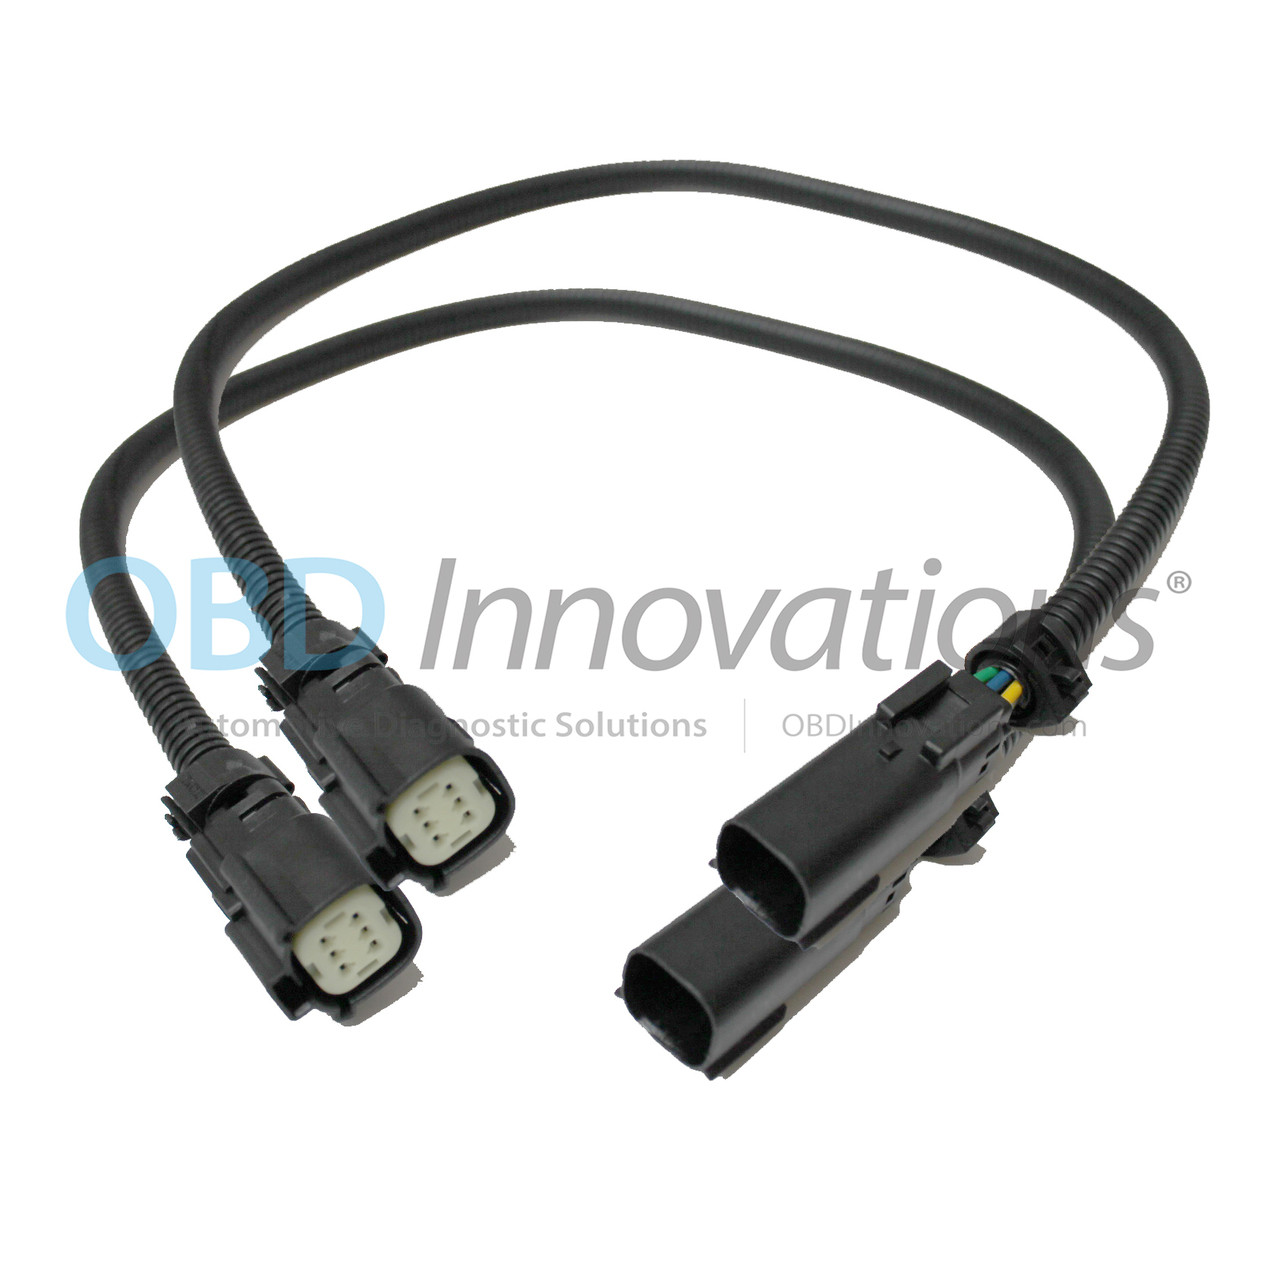 hight resolution of 6 pin o2 sensor extension cable 15 17 mustang gt obd innovations gt wiring harness gt toyota tail light connector harness extension